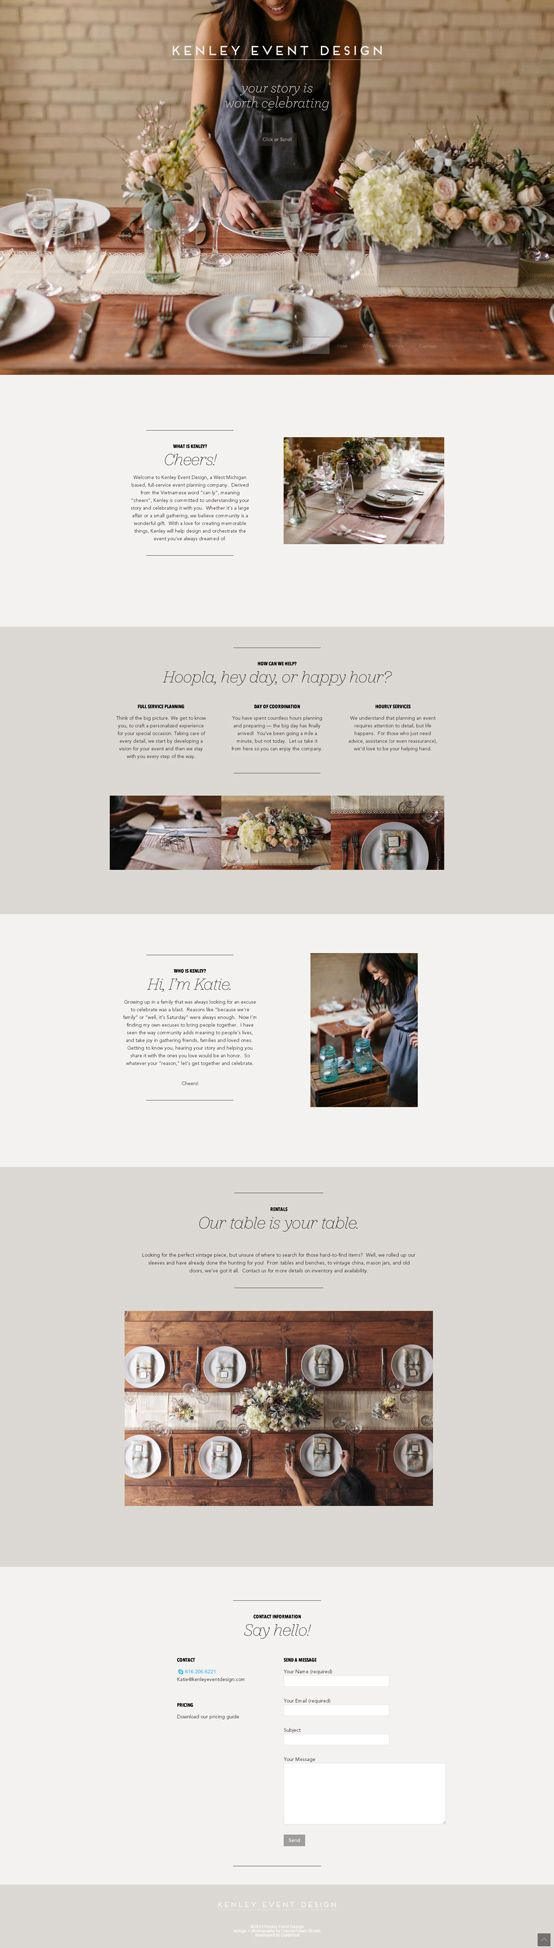 Gorgeous blend of minimalist design and content with stunning photography - we love this! #minimalistdesign #webdesign